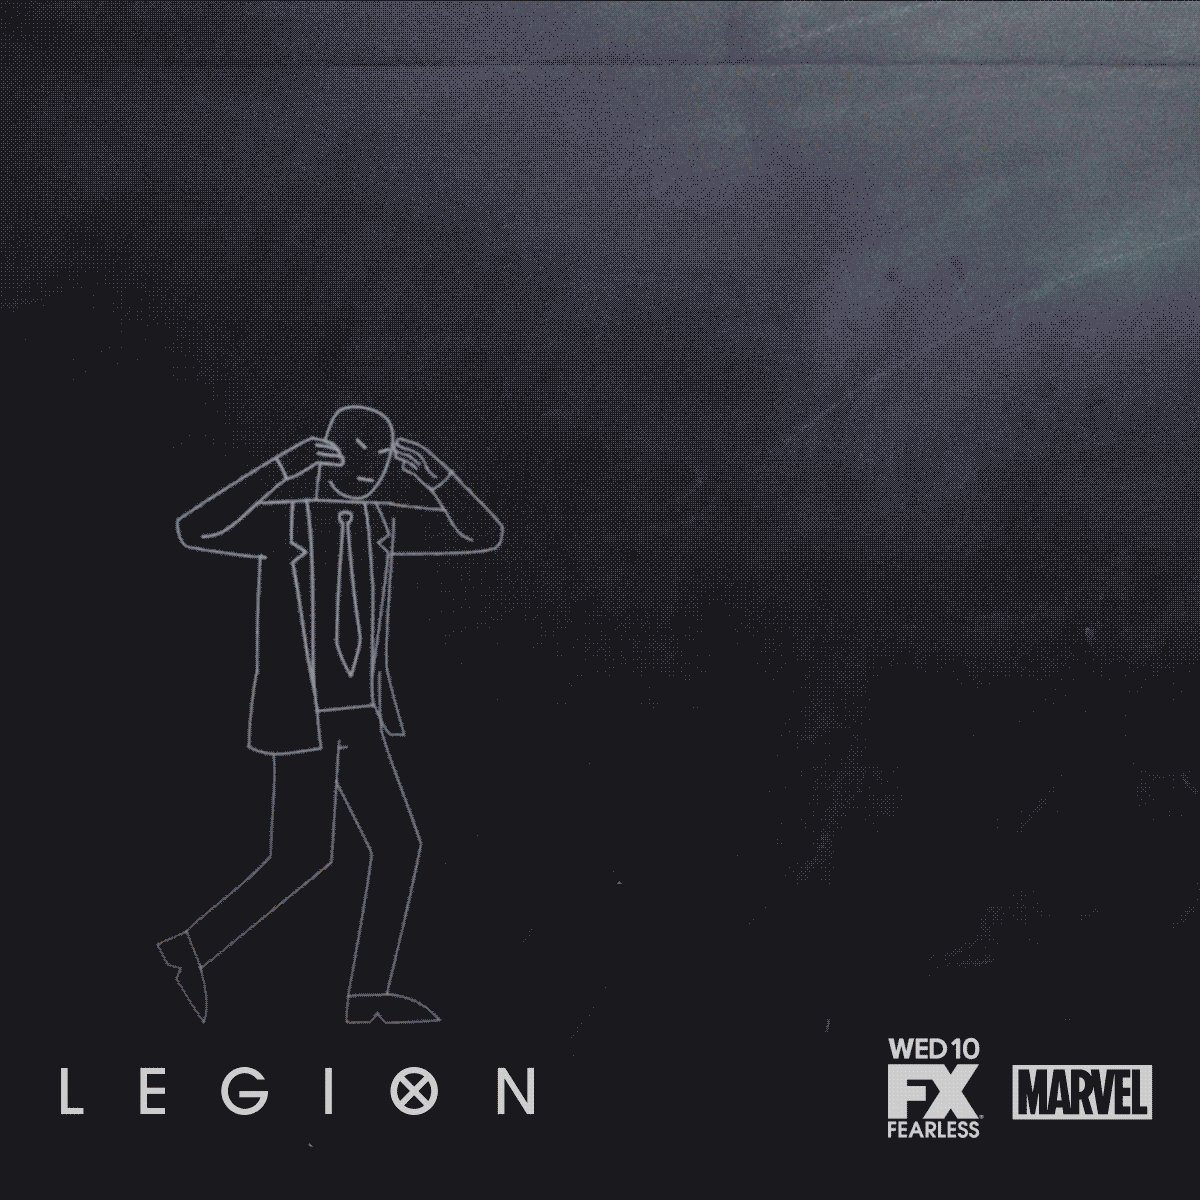 The powers at play. #LegionFX https://t.co/PlkWAnKUWy